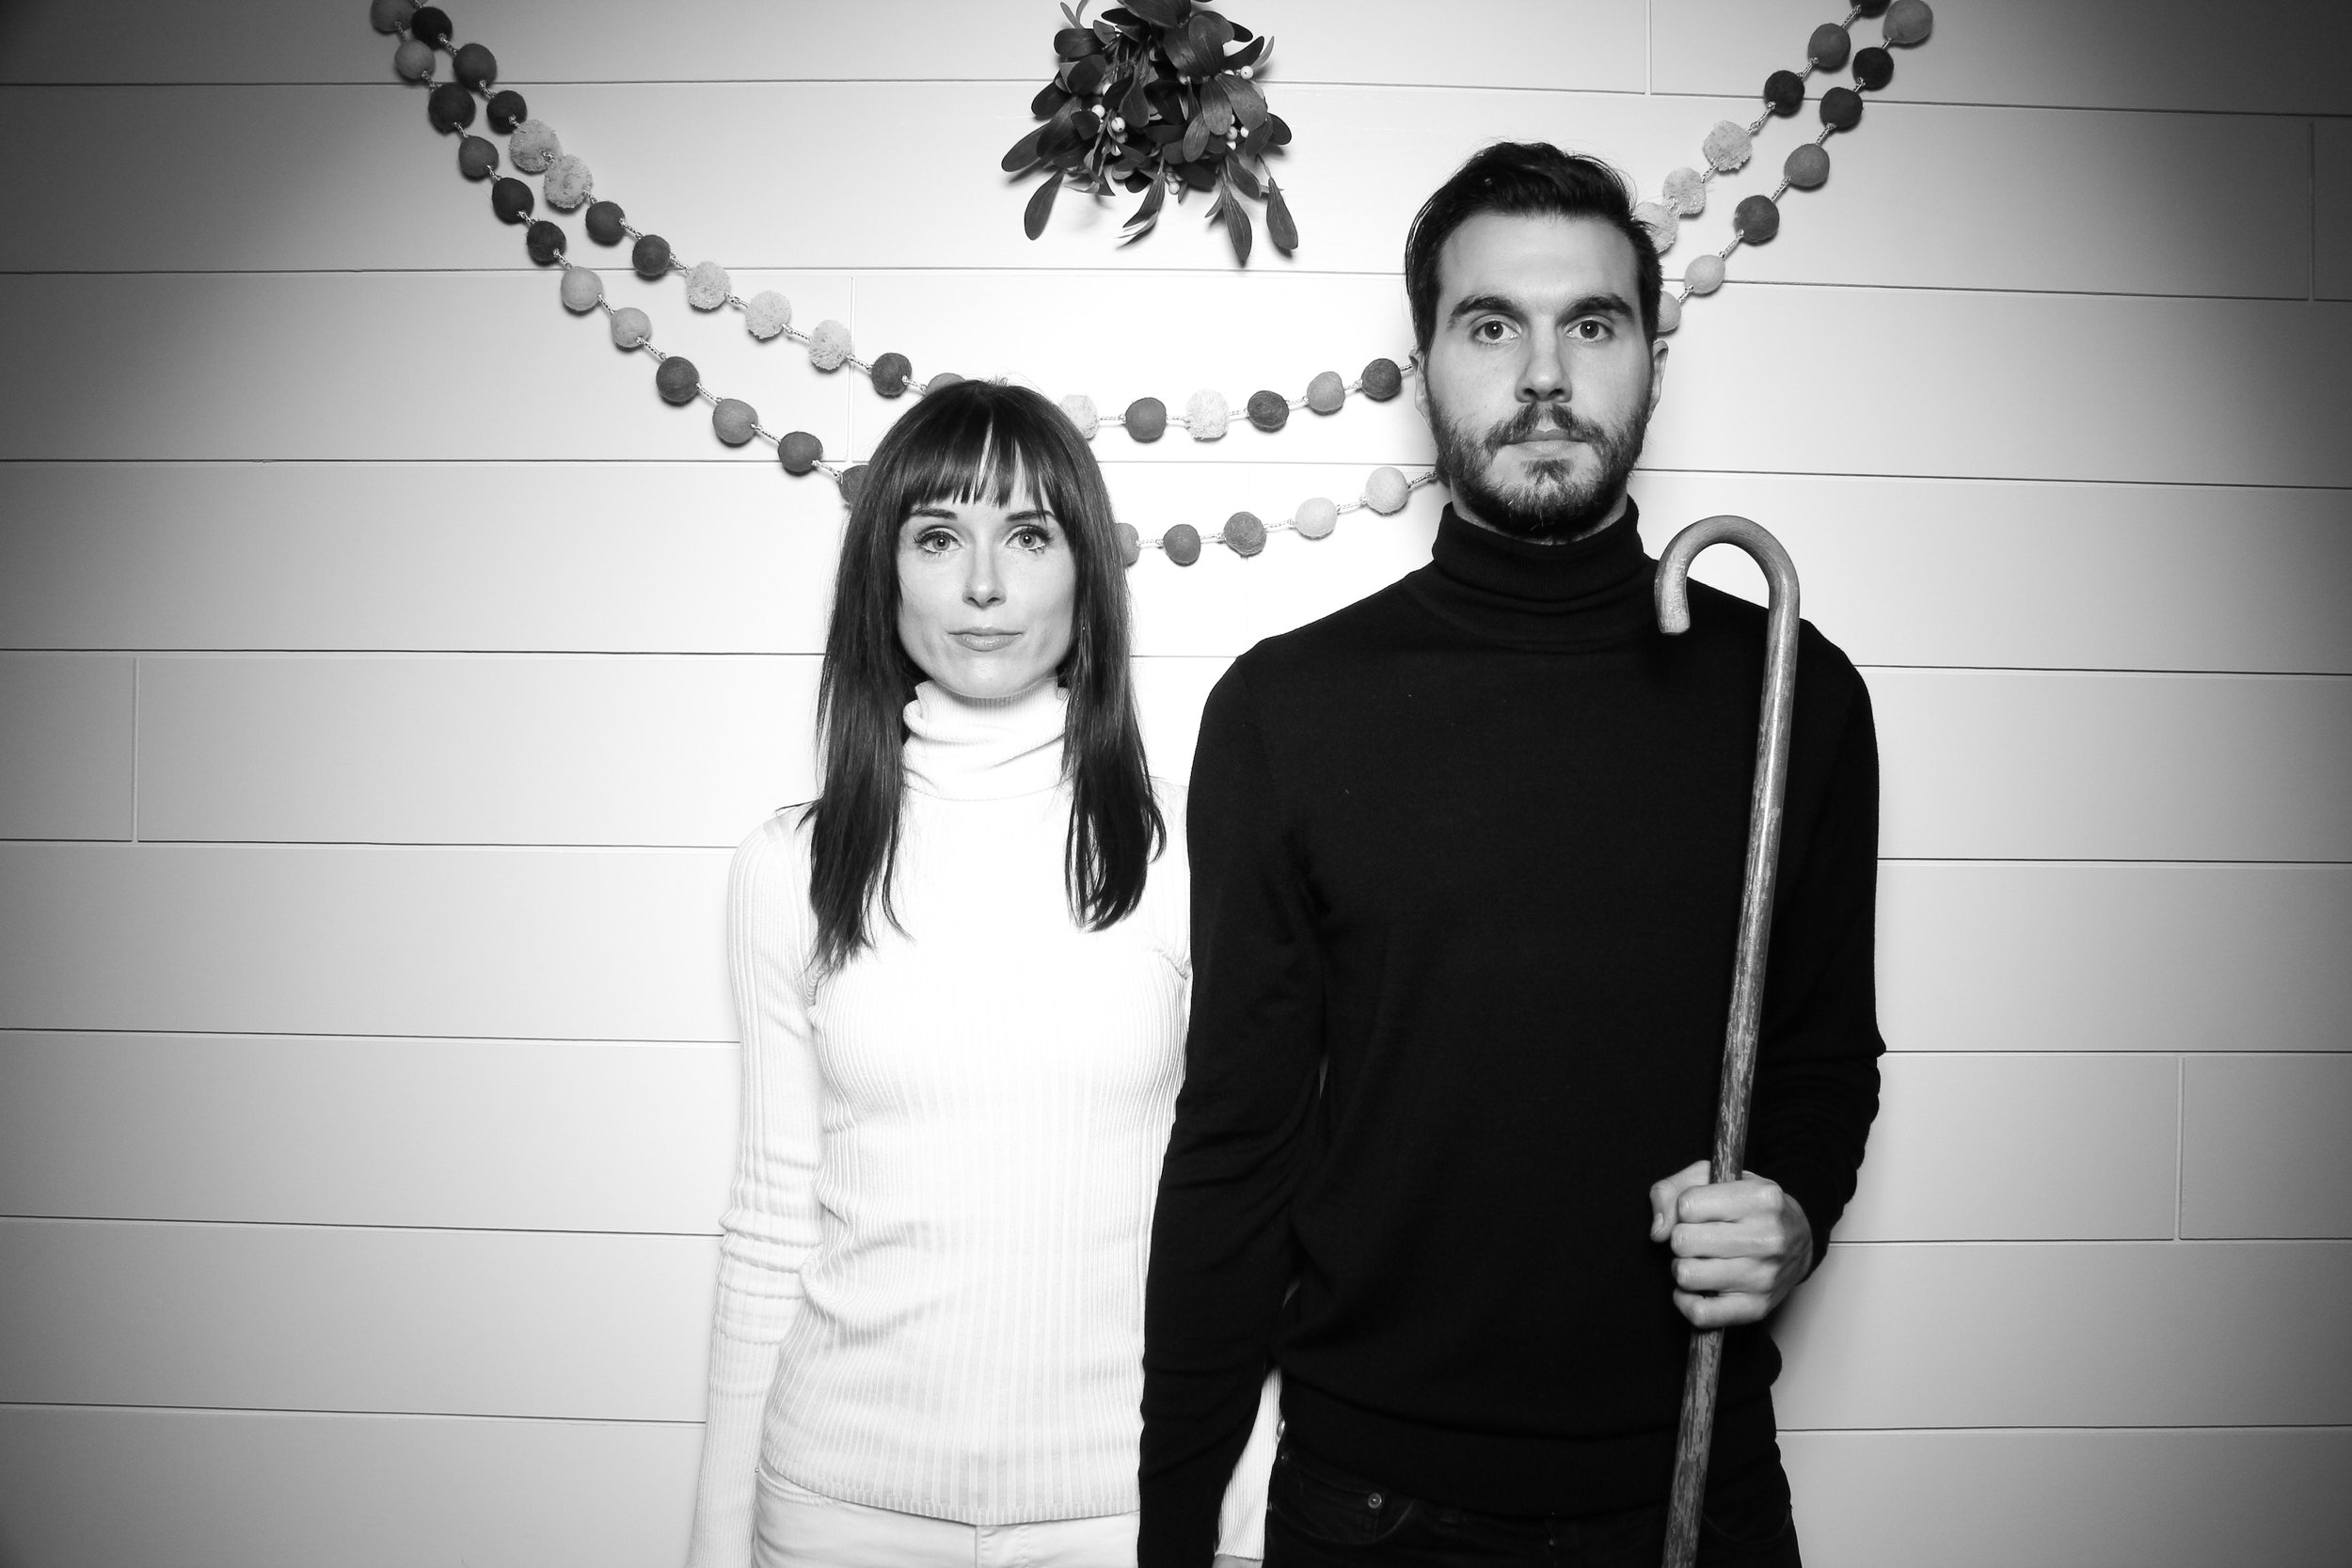 Chicago_Vintage_Photobooth_Christmas_Holiday_Party_10.jpg